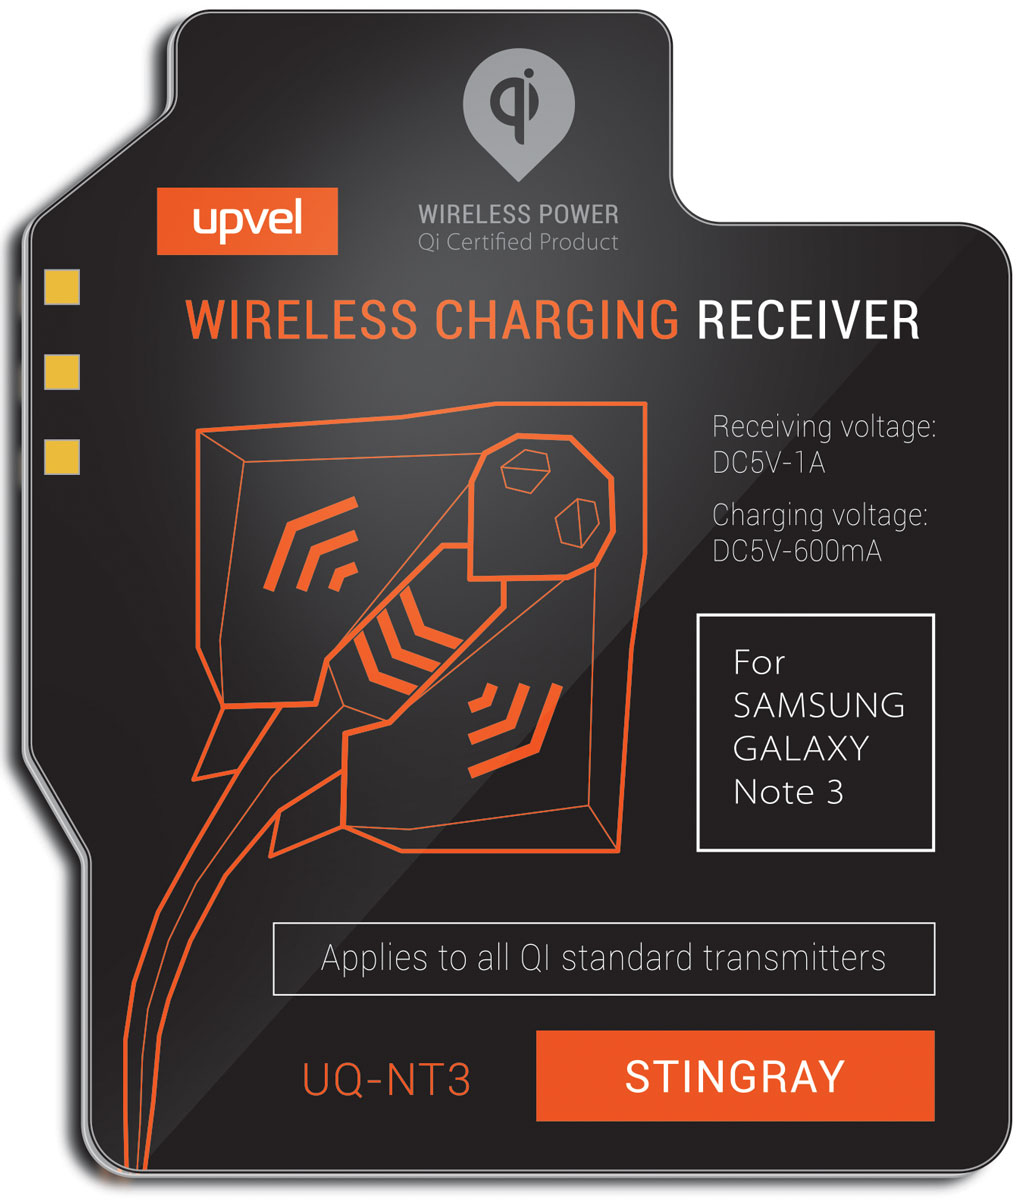 UPVEL UQ-NT3 Stingray для Samsung Galaxy Note 3, Black модуль-приемник беспроводной зарядки стандарта Qi ccy u3 165 bk micro usb 3 0 male to usb 3 0 female otg cable w external power for galaxy note 3